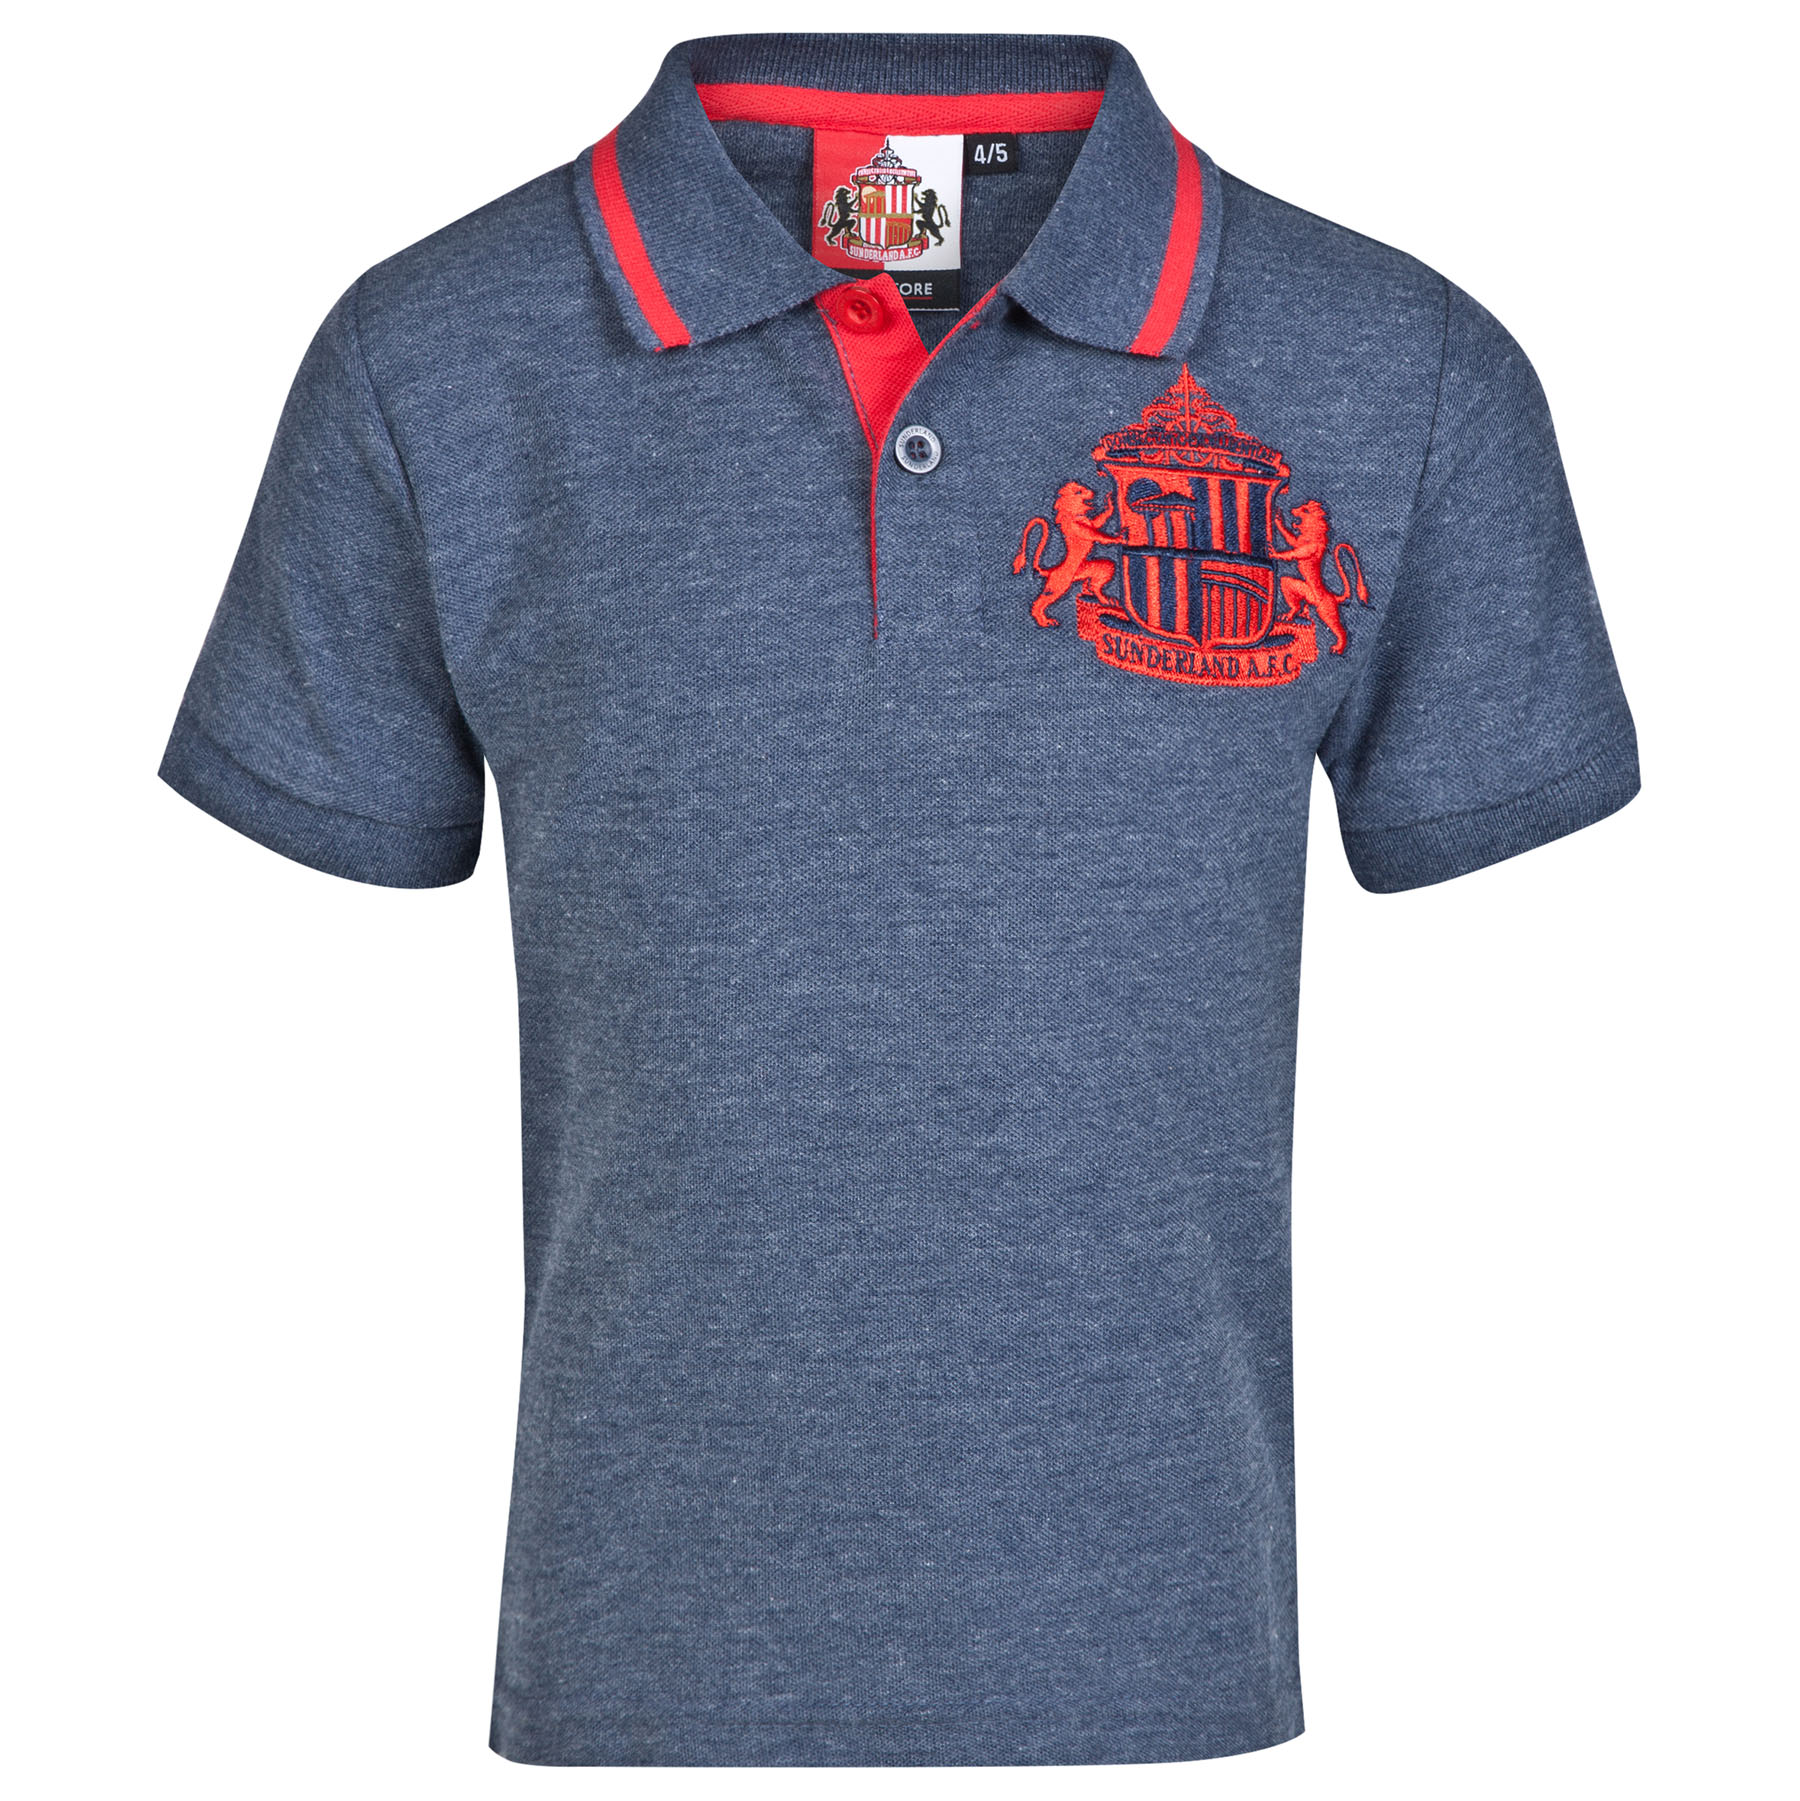 Sunderland Essential Polo Shirt - Heather Navy -Infant Boys